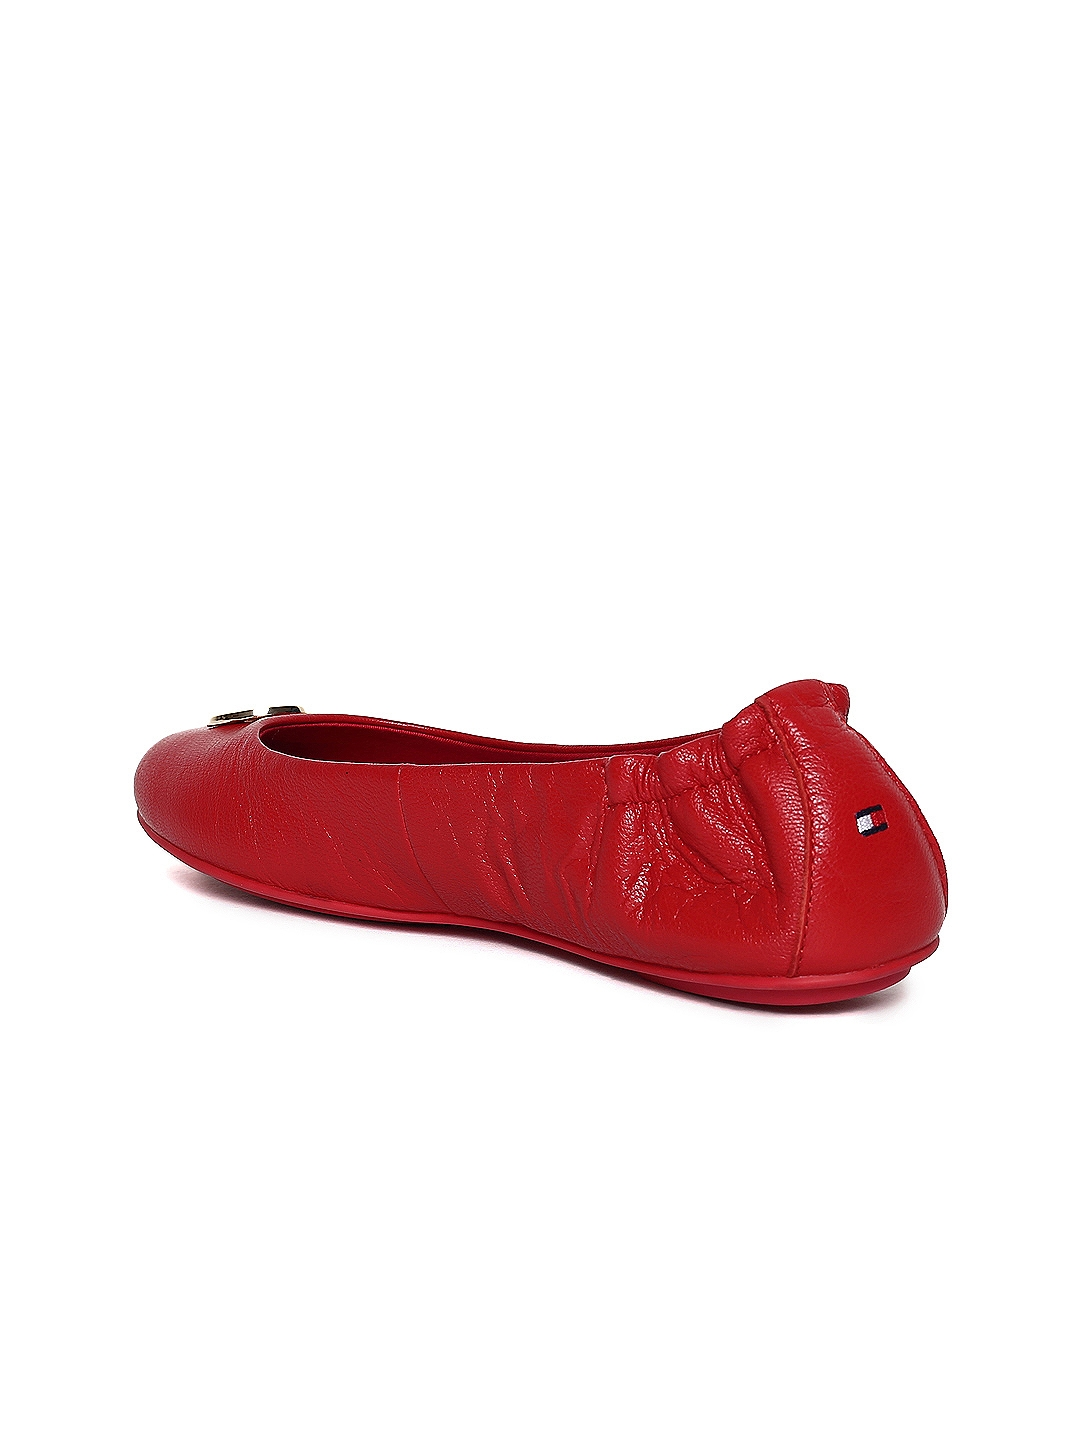 82047a7c9 Buy Tommy Hilfiger Women Red Solid Leather Ballerinas - Flats for ...